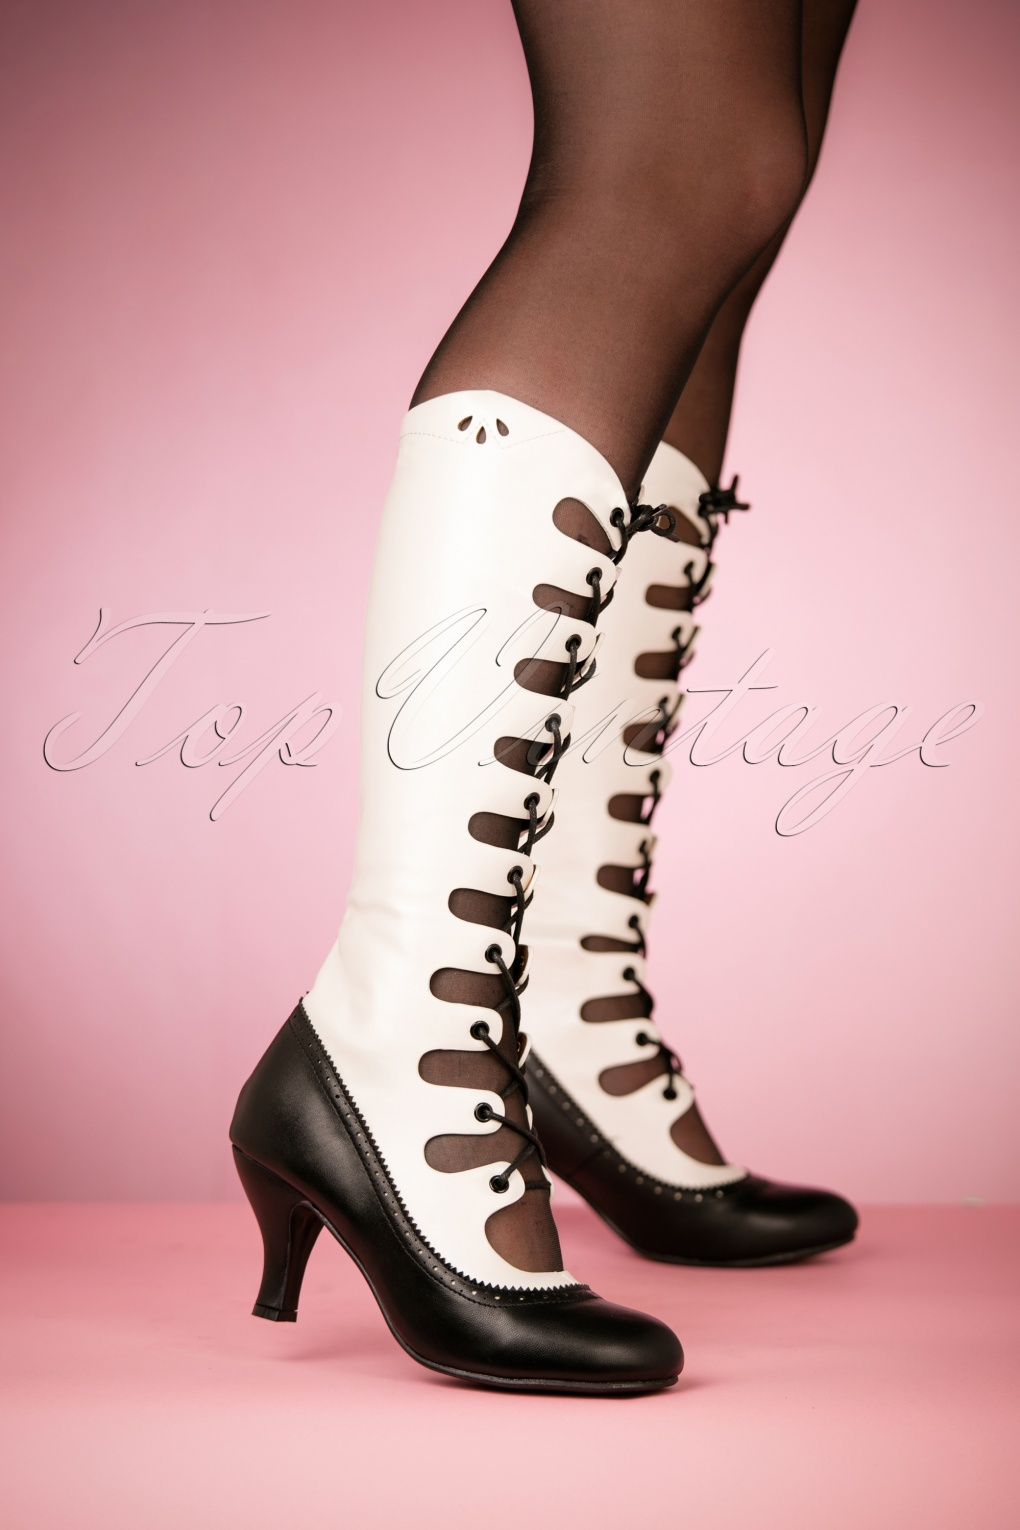 Steampunk Boots & Shoes, Heels & Flats 20s Free Bird Boots in Black and White £74.42 AT vintagedancer.com